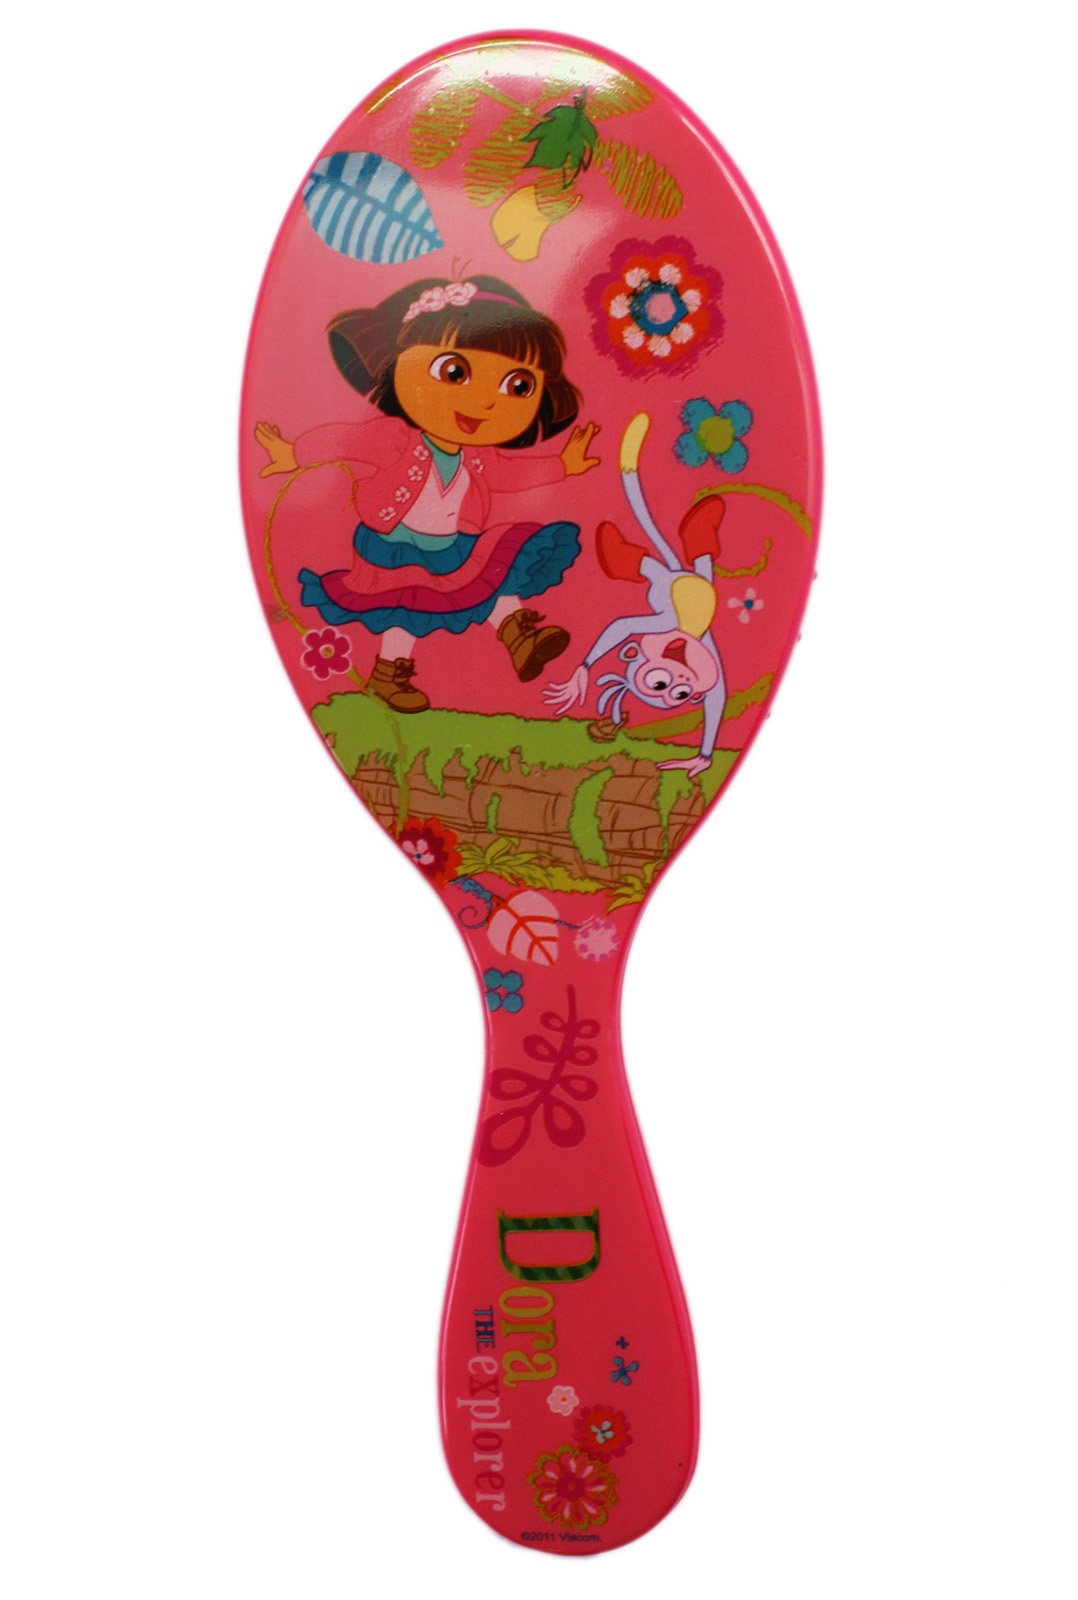 Dora the Explorer Dora and Boots Pink Colored Plastic Hairbrush by